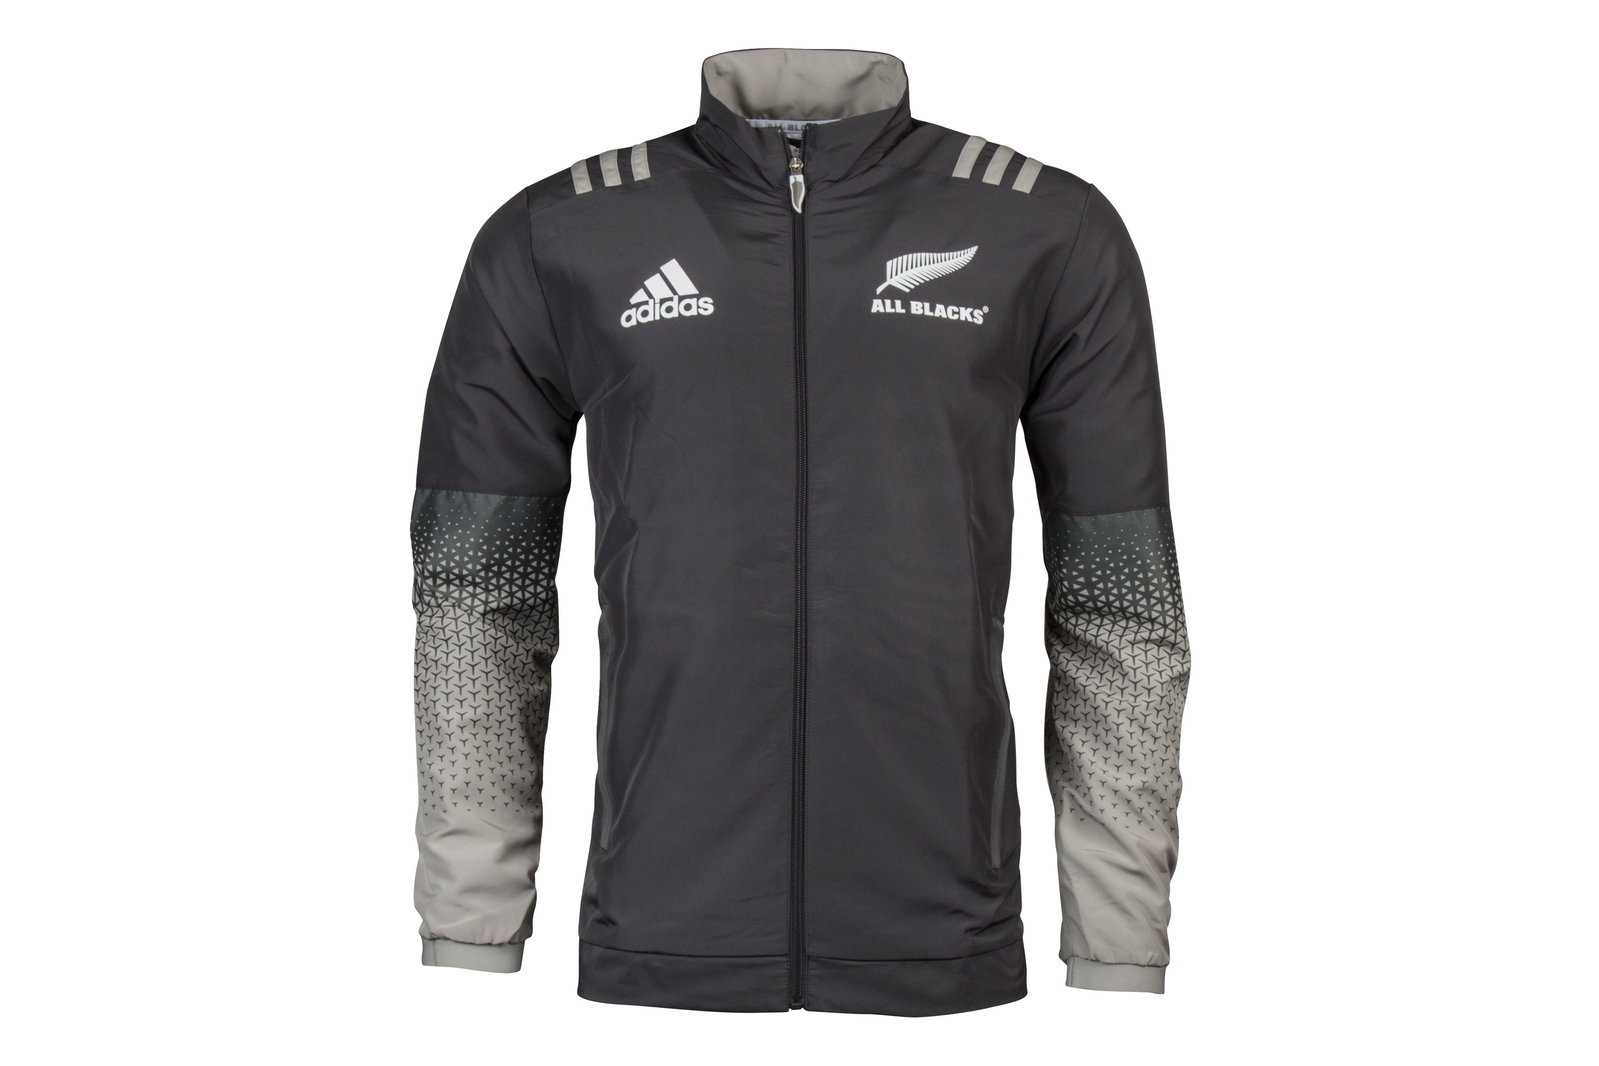 Details about adidas Mens New Zealand All Blacks 201718 Players Presentation Rugby Jacket